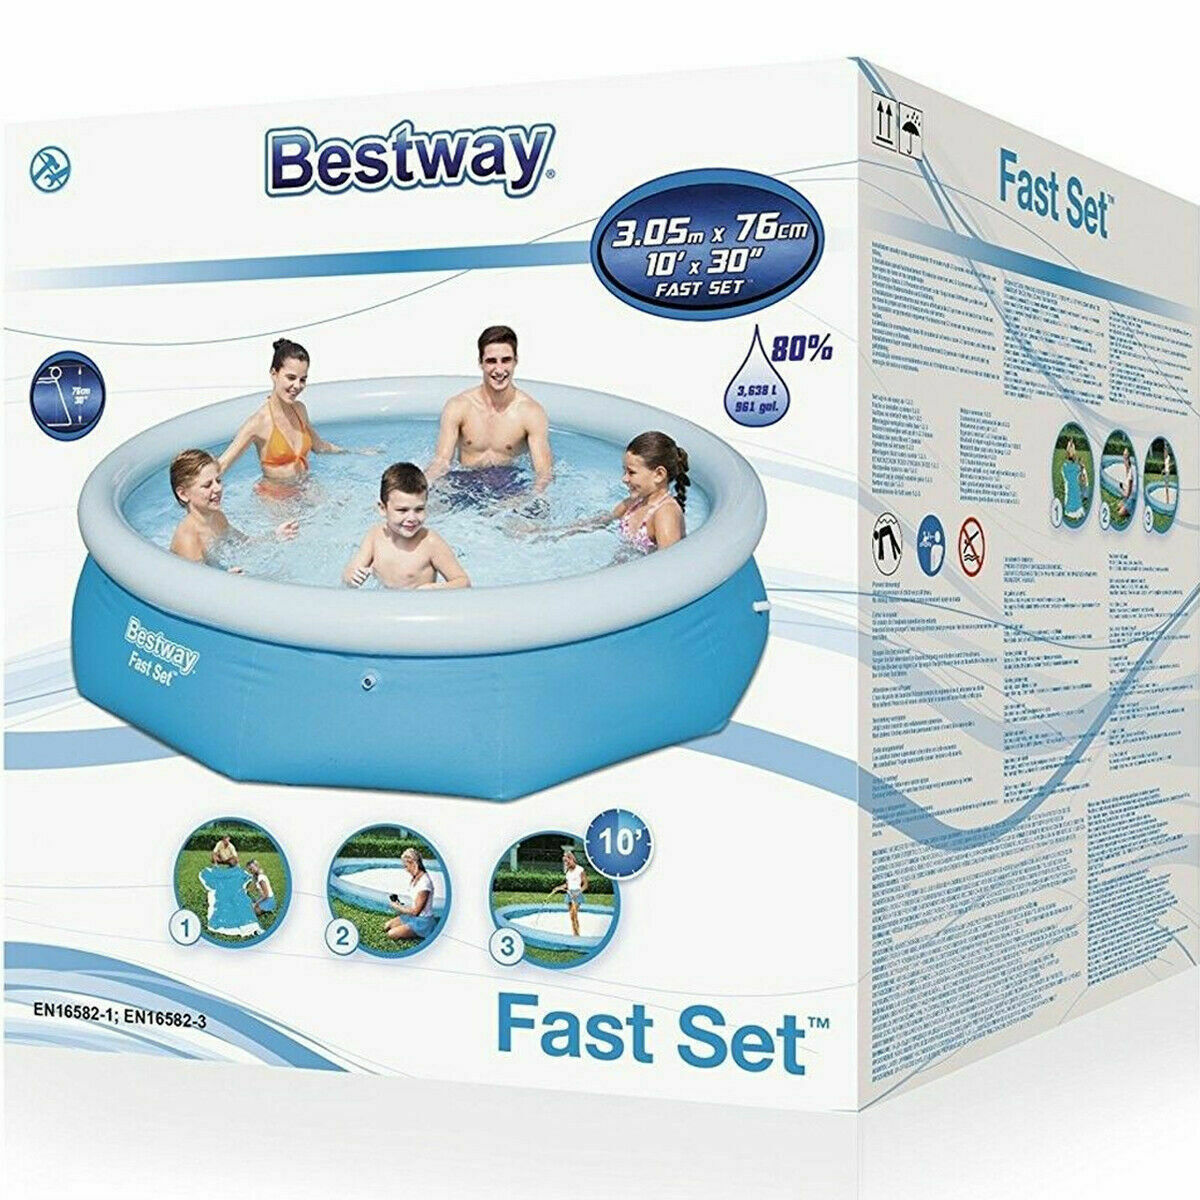 Bestway Fast Set Family Swimming Pool Outdoor Garden patio Pool 6ft/10ft